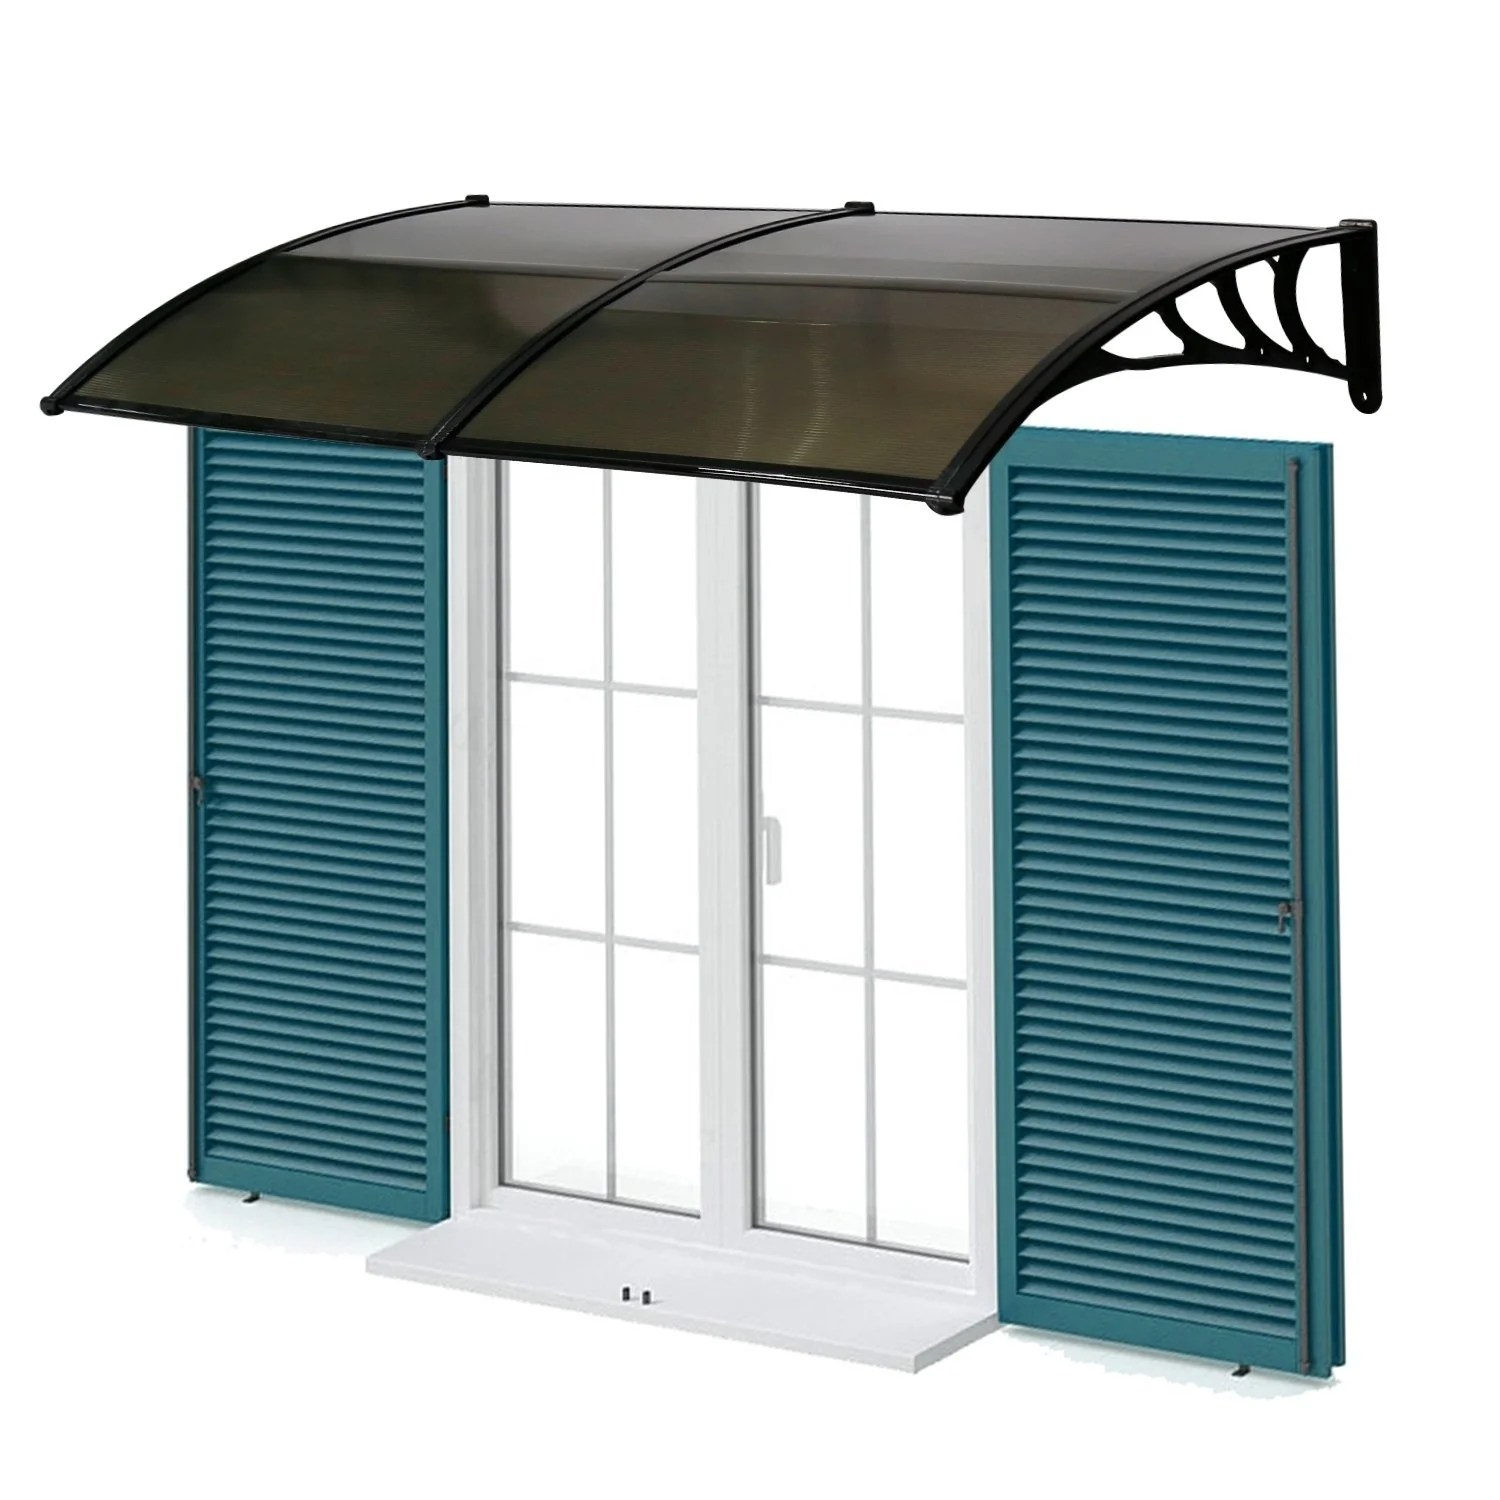 bor roofing shop kinbor 80 x 40 window awning front door canopy polycarbonate